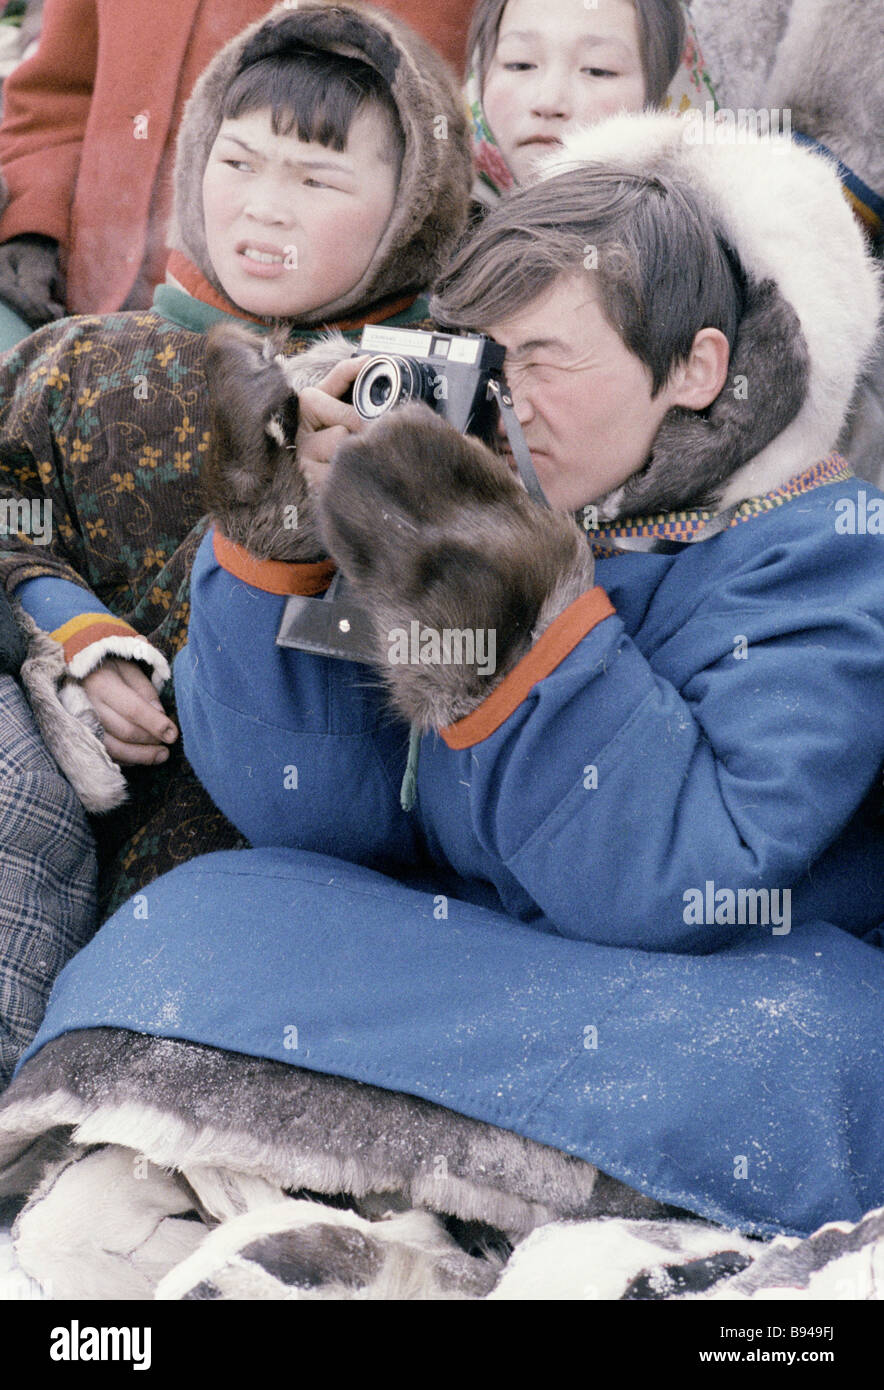 Spectators at a reindeer breeders festival - Stock Image